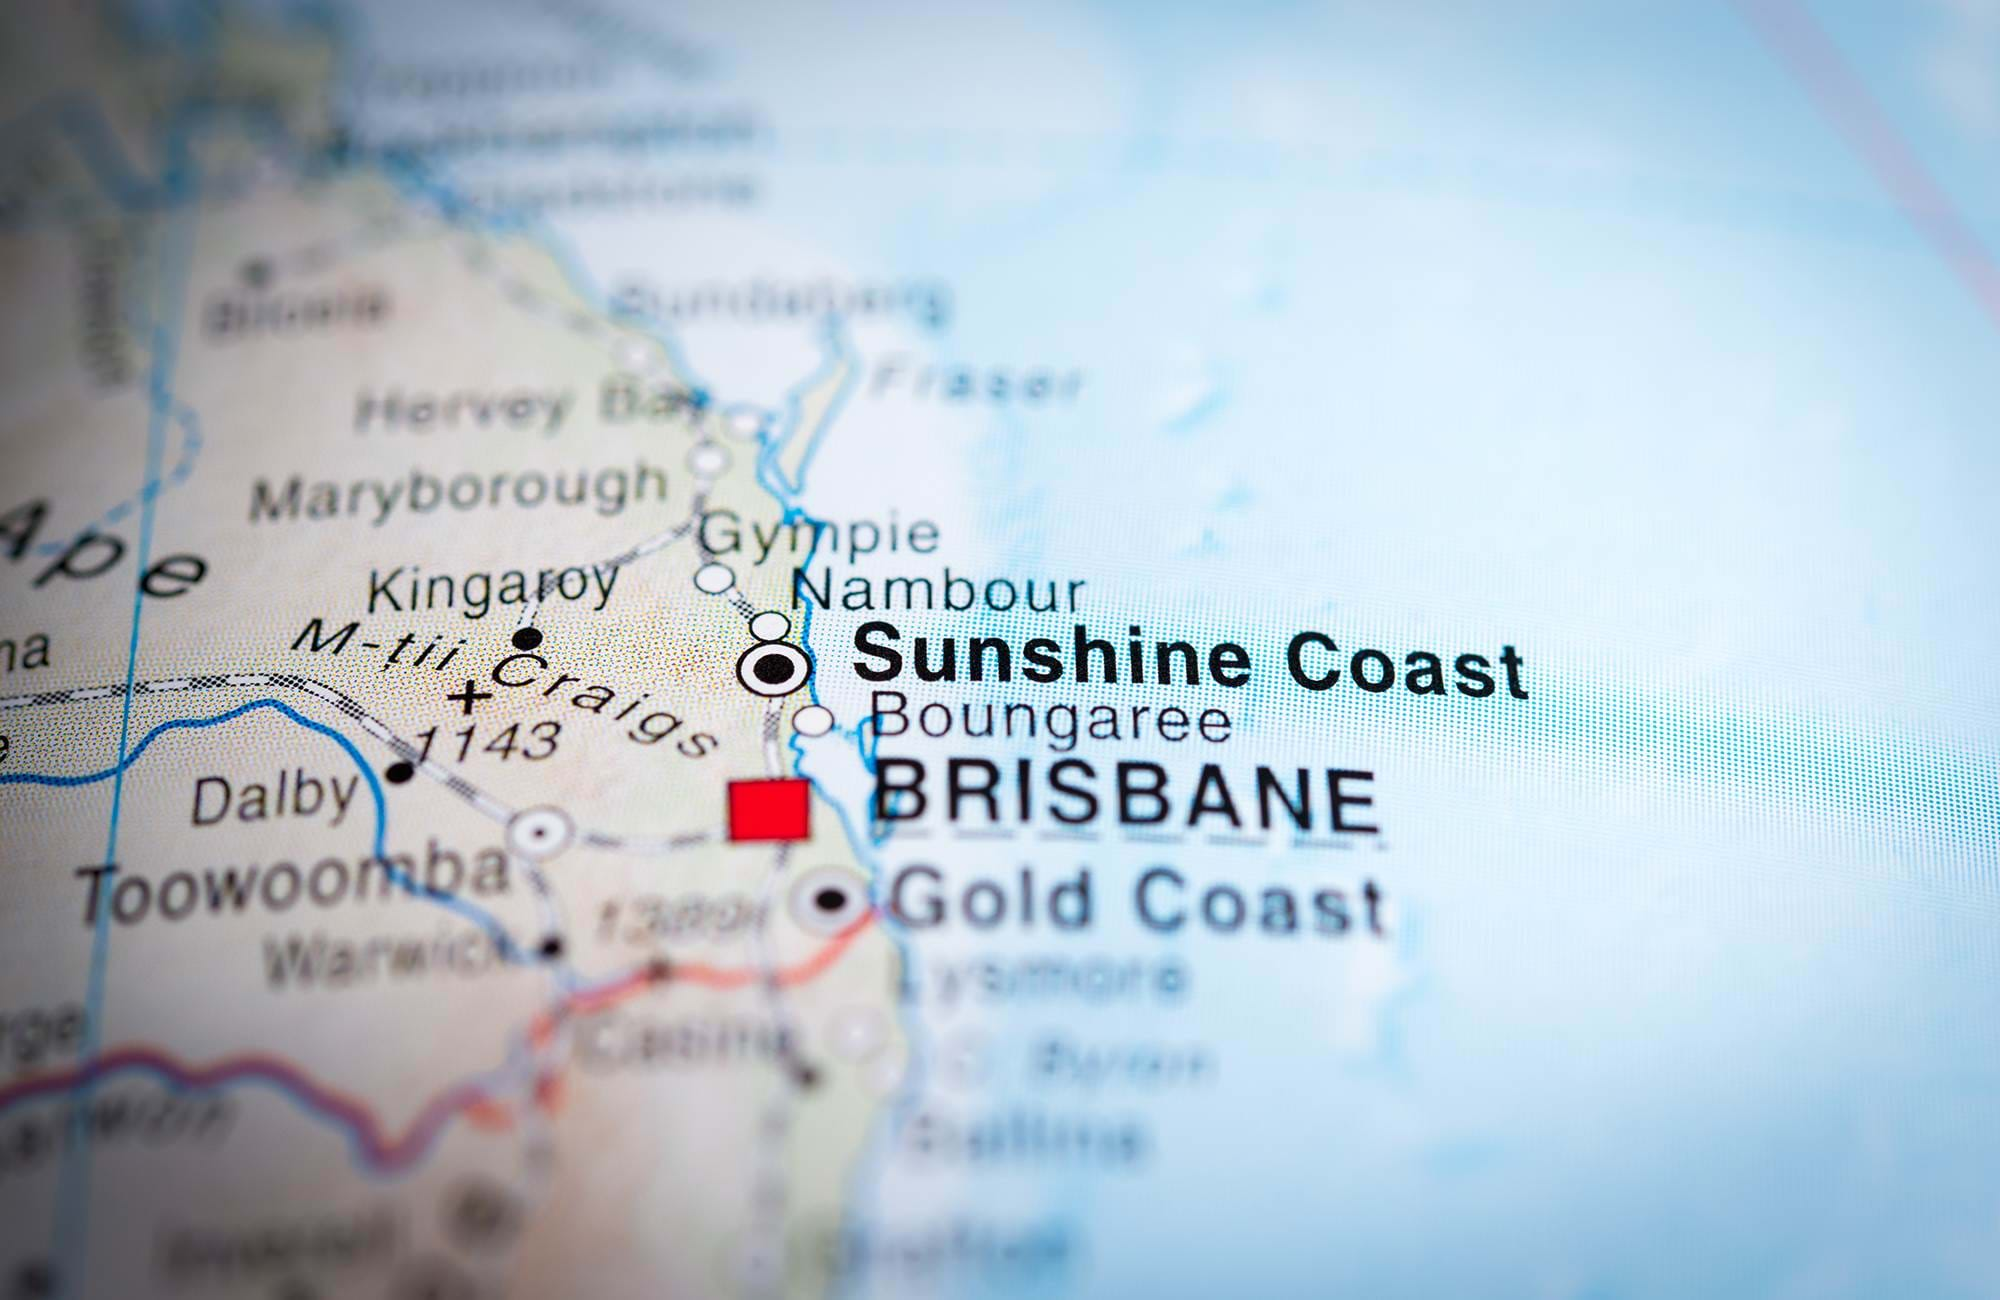 kort over sunshine coast lige nord for brisbane i australien